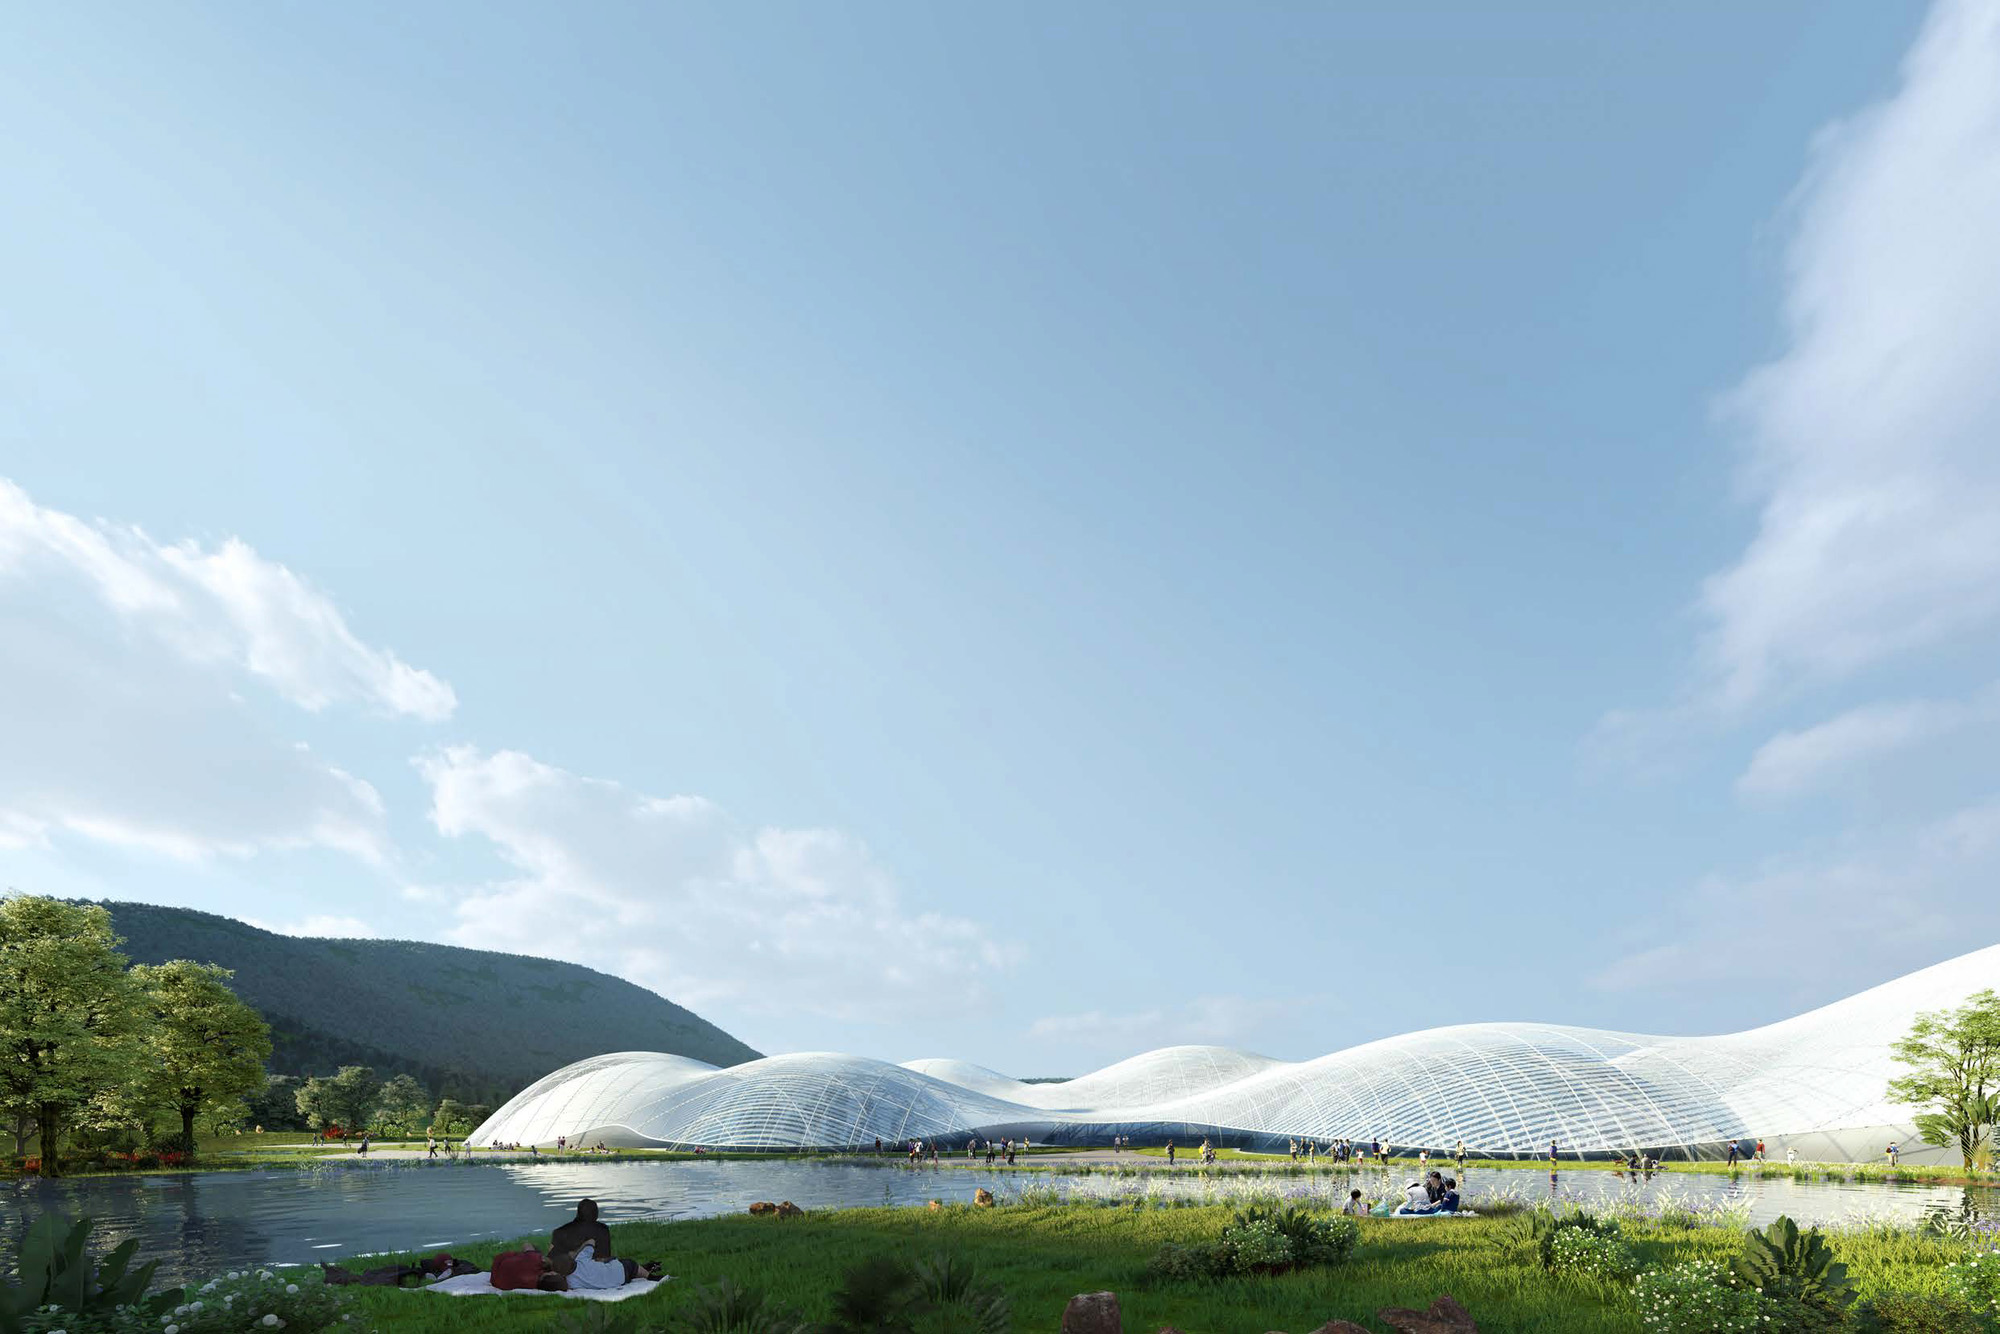 SANAA Wins Competition to Design Shenzhen Maritime Museum in China